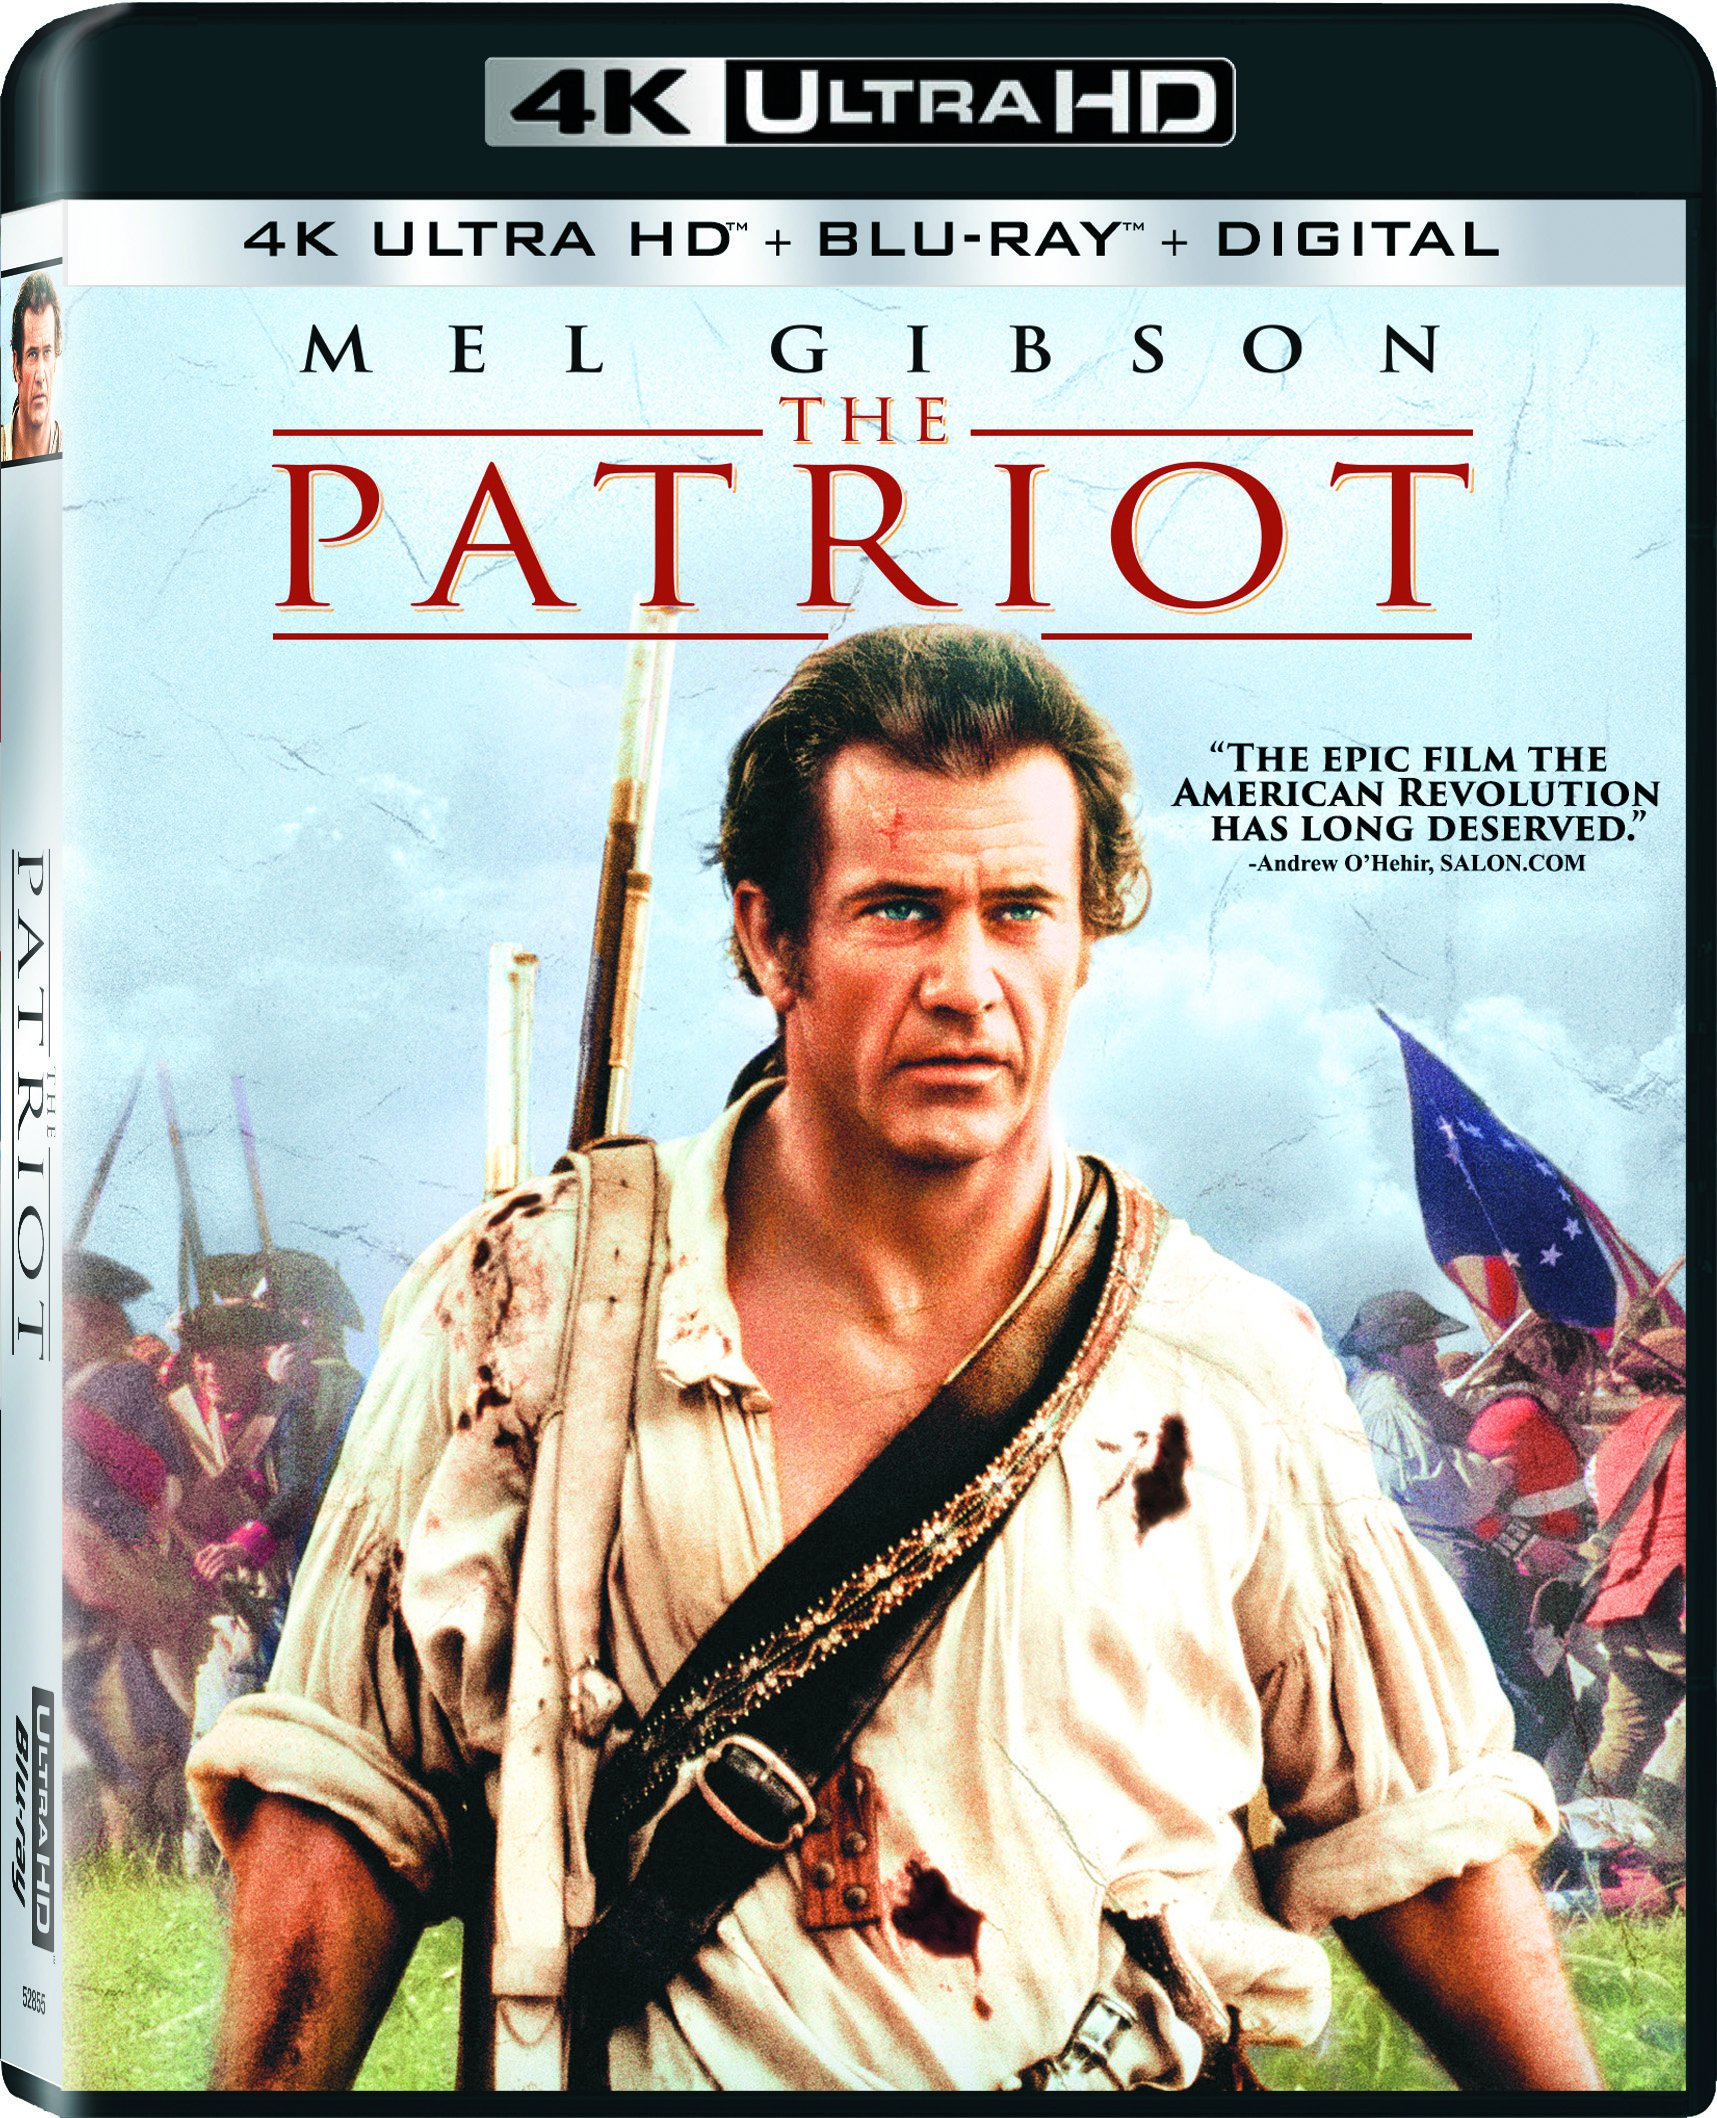 4K Blu-ray : The Patriot (With Blu-Ray, 4K Mastering, Digital Copy, Widescreen, 2 Pack)